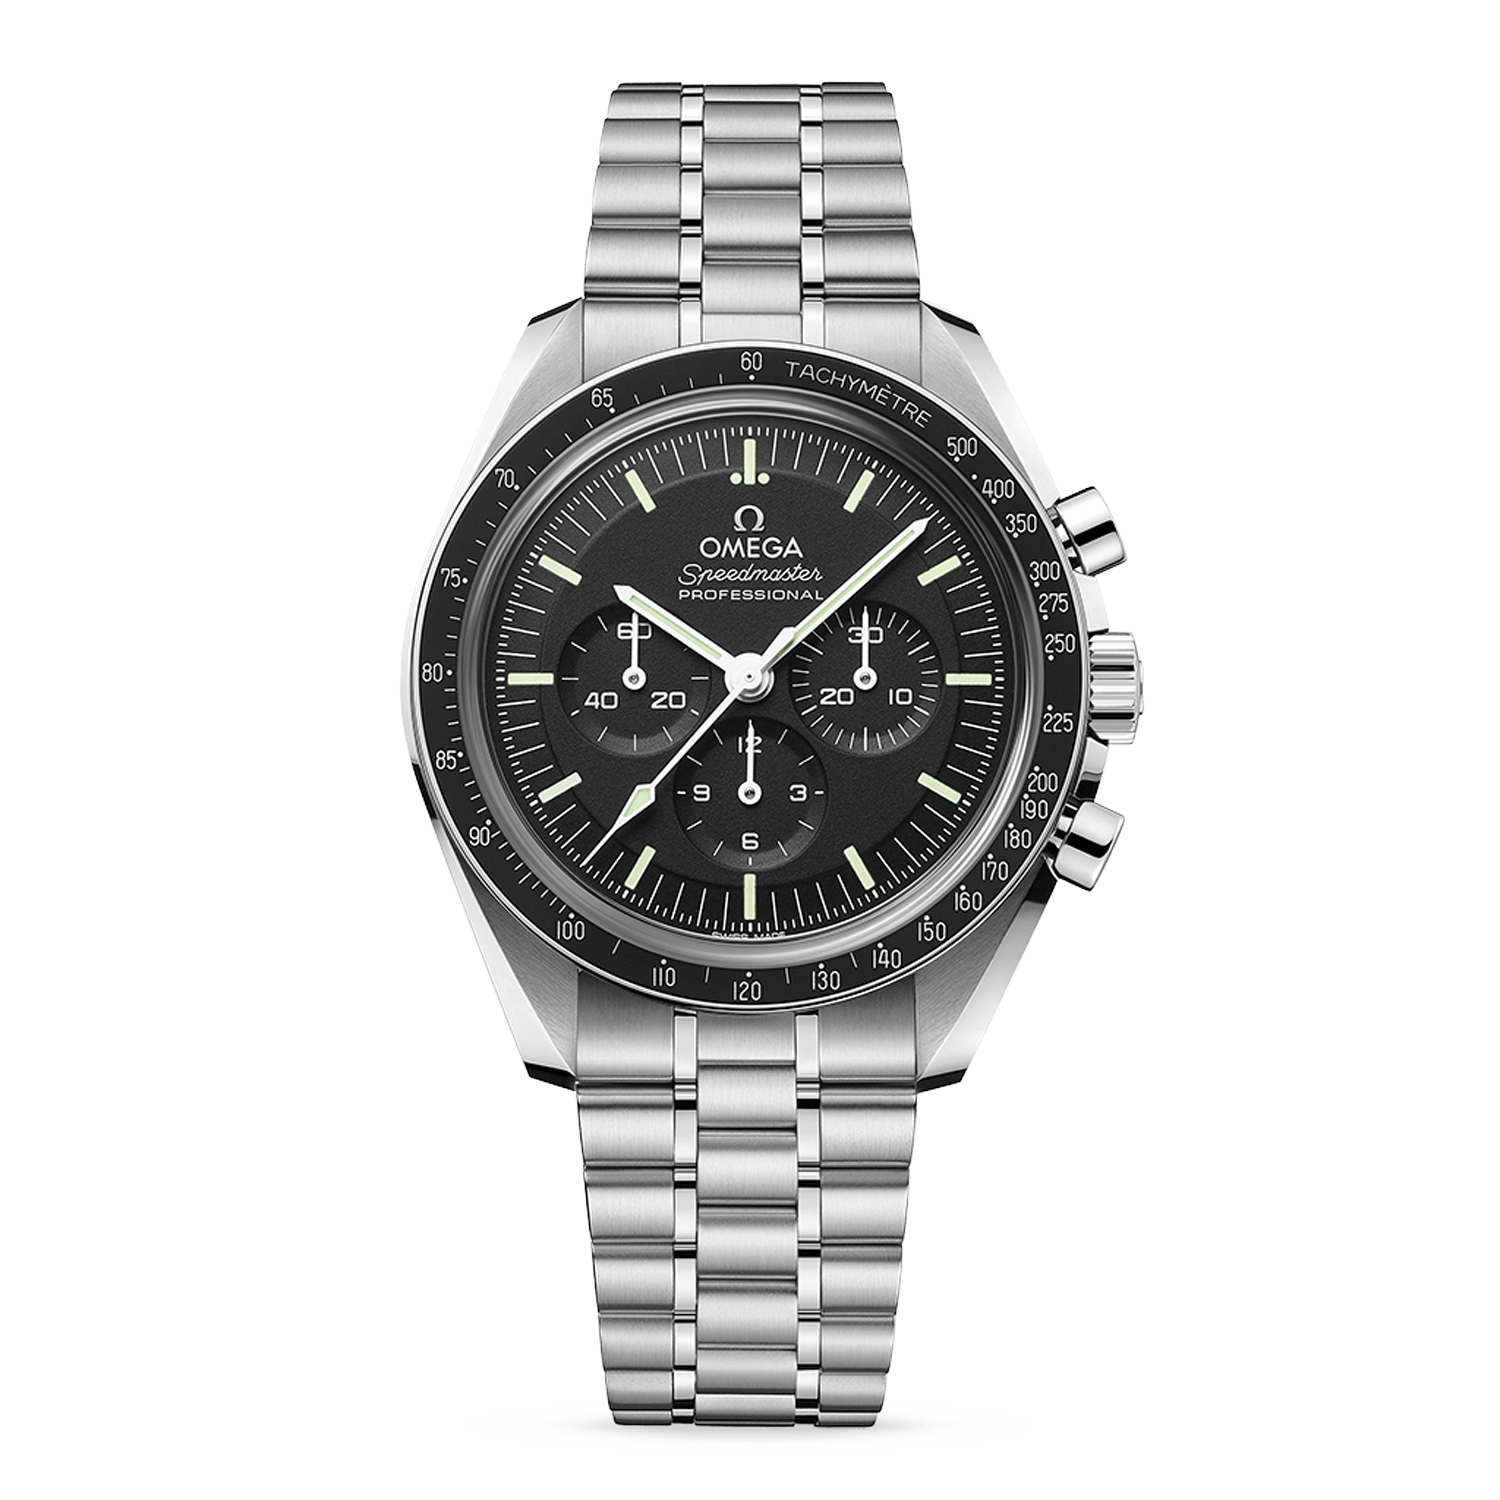 Omega Speedmaster Moonwatch Professional Master Chronometer Chronograph 42 mm